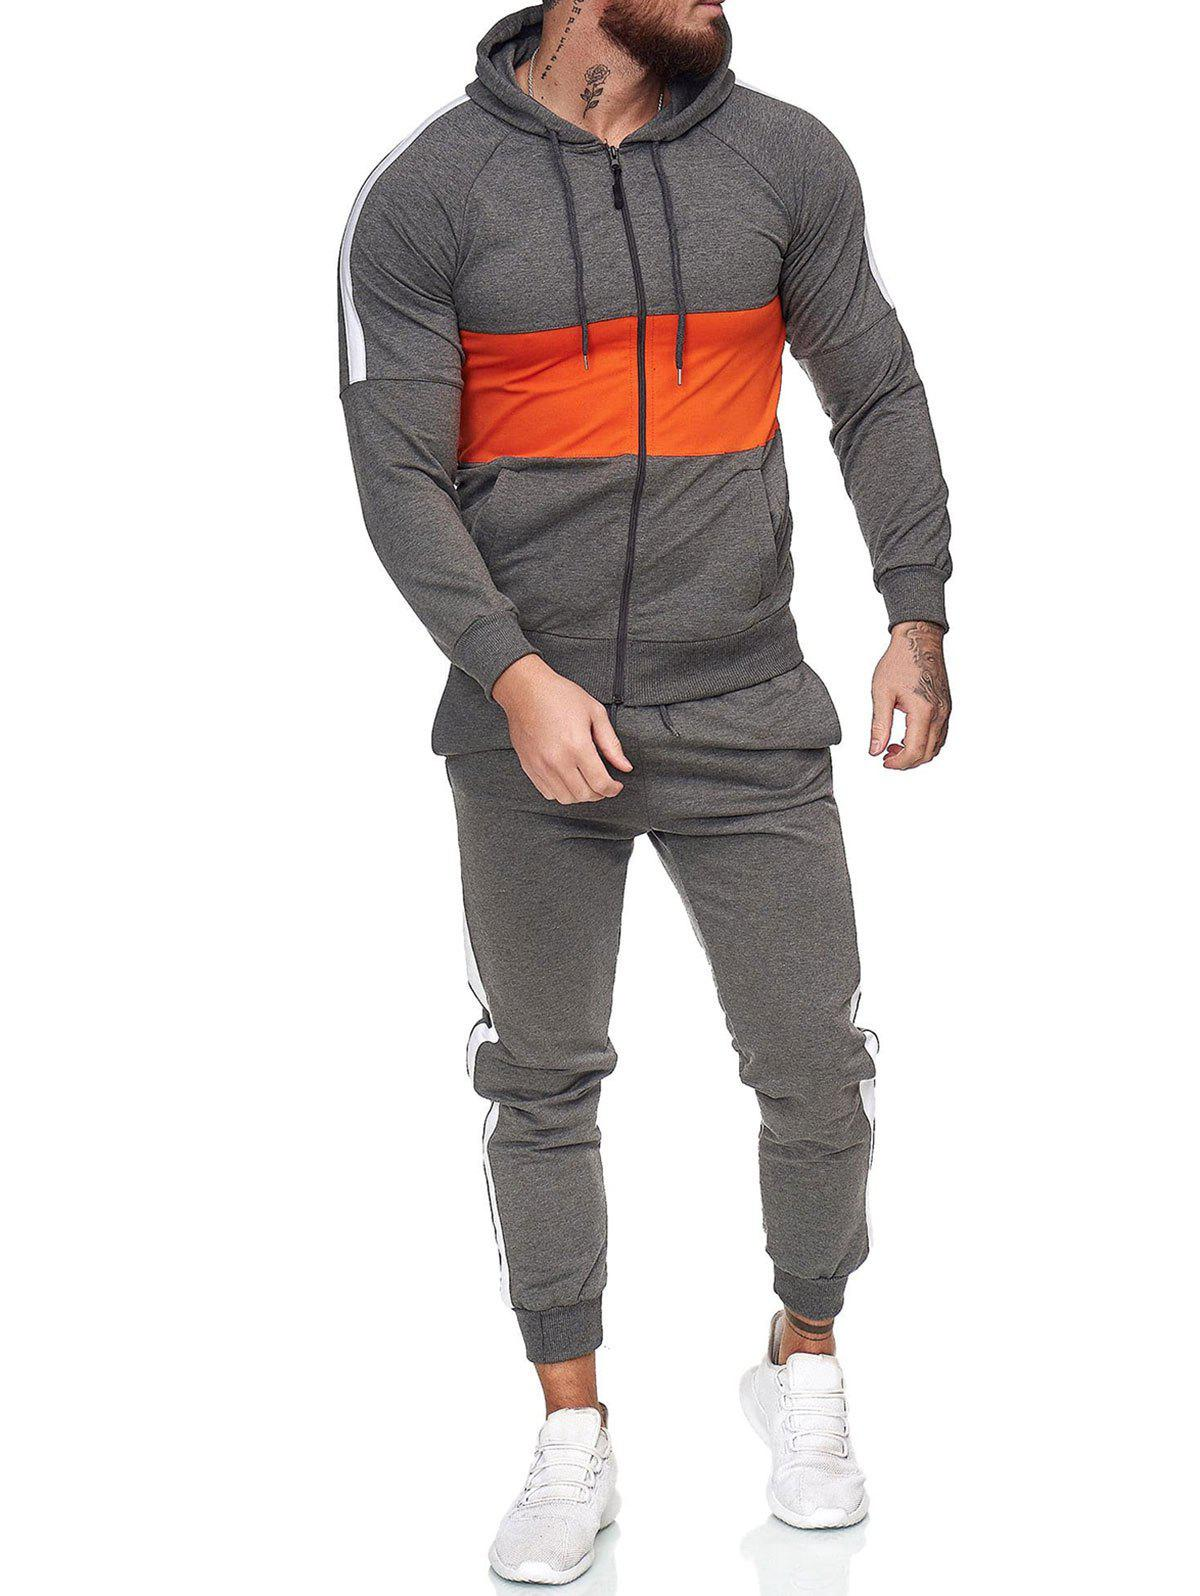 Contrast Zip Up Hoodie Jacket and Pants Two Piece Sports Set - DARK GRAY L